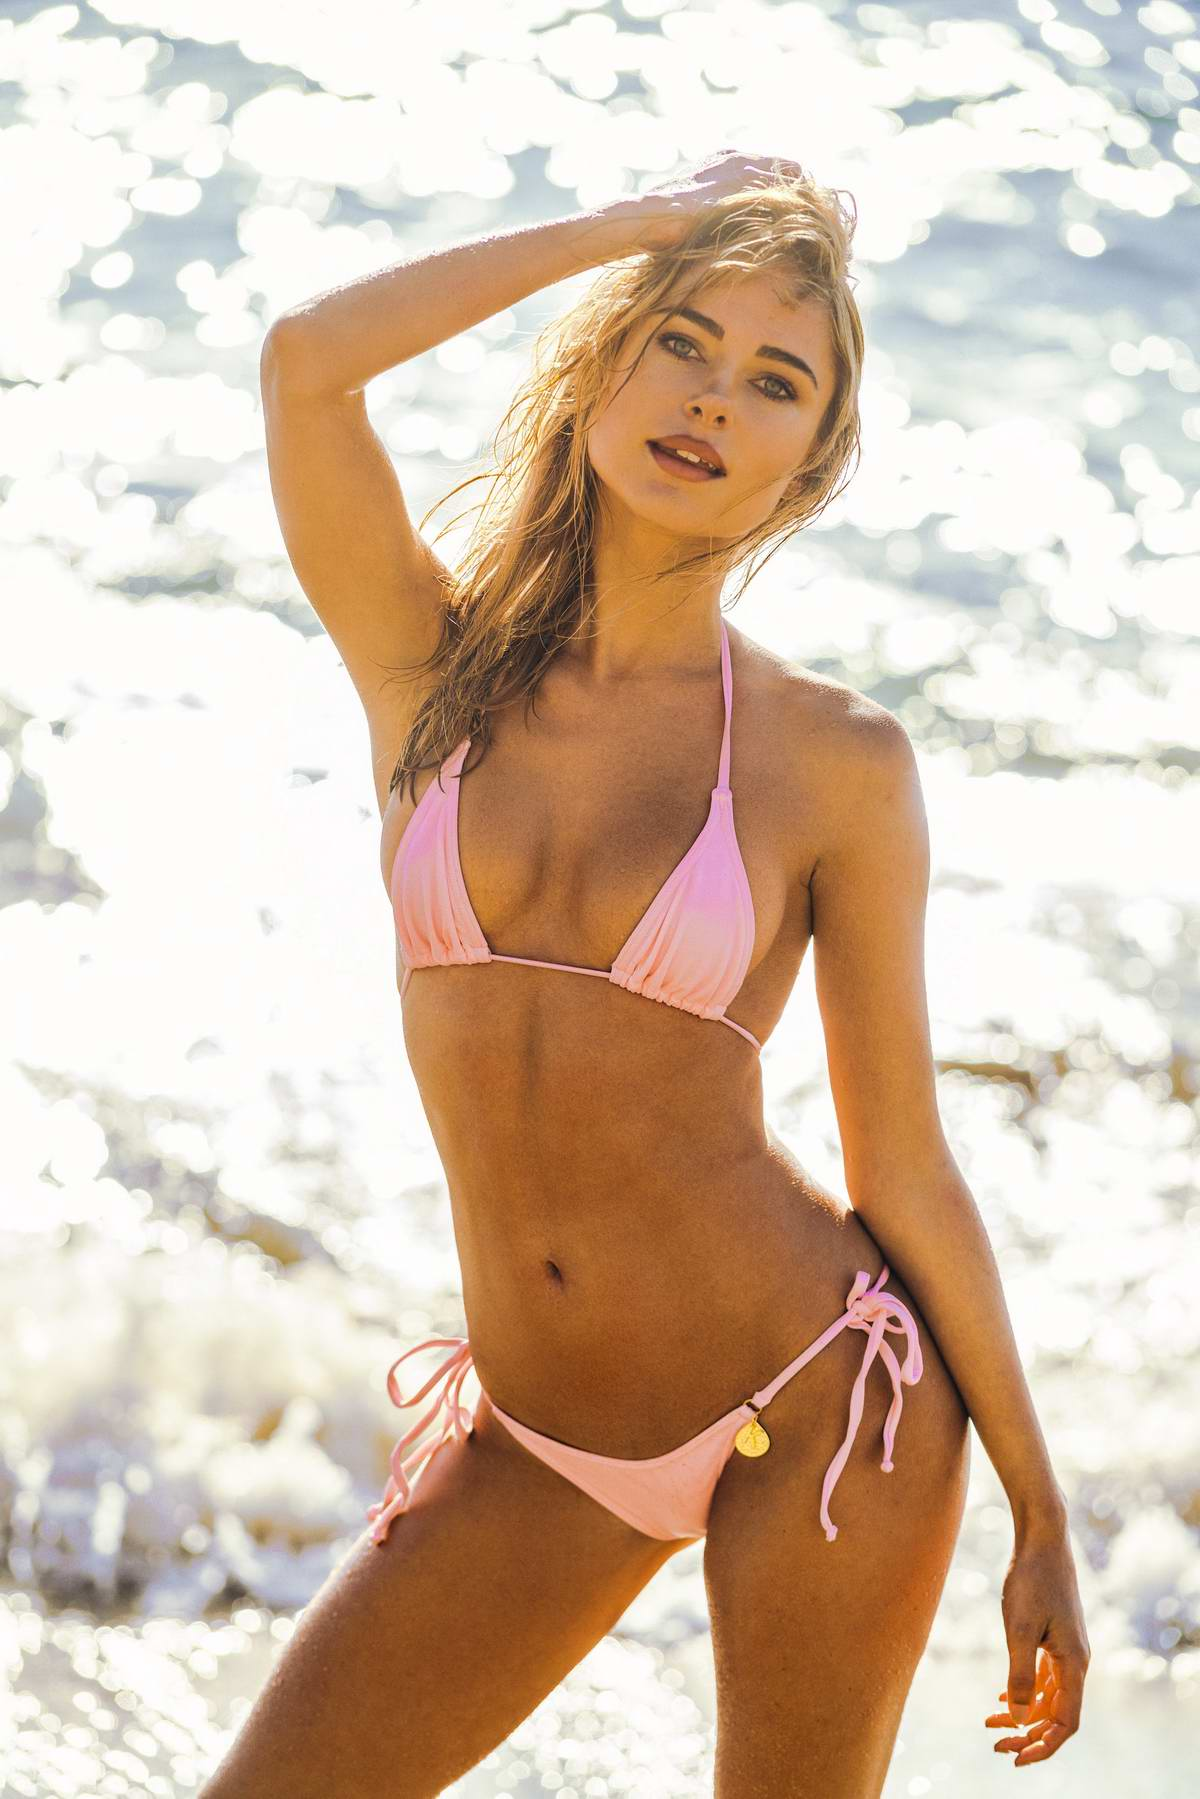 Kimberley Garner poses up in a pink bikini during a beach photoshoot in Saint-Tropez, France